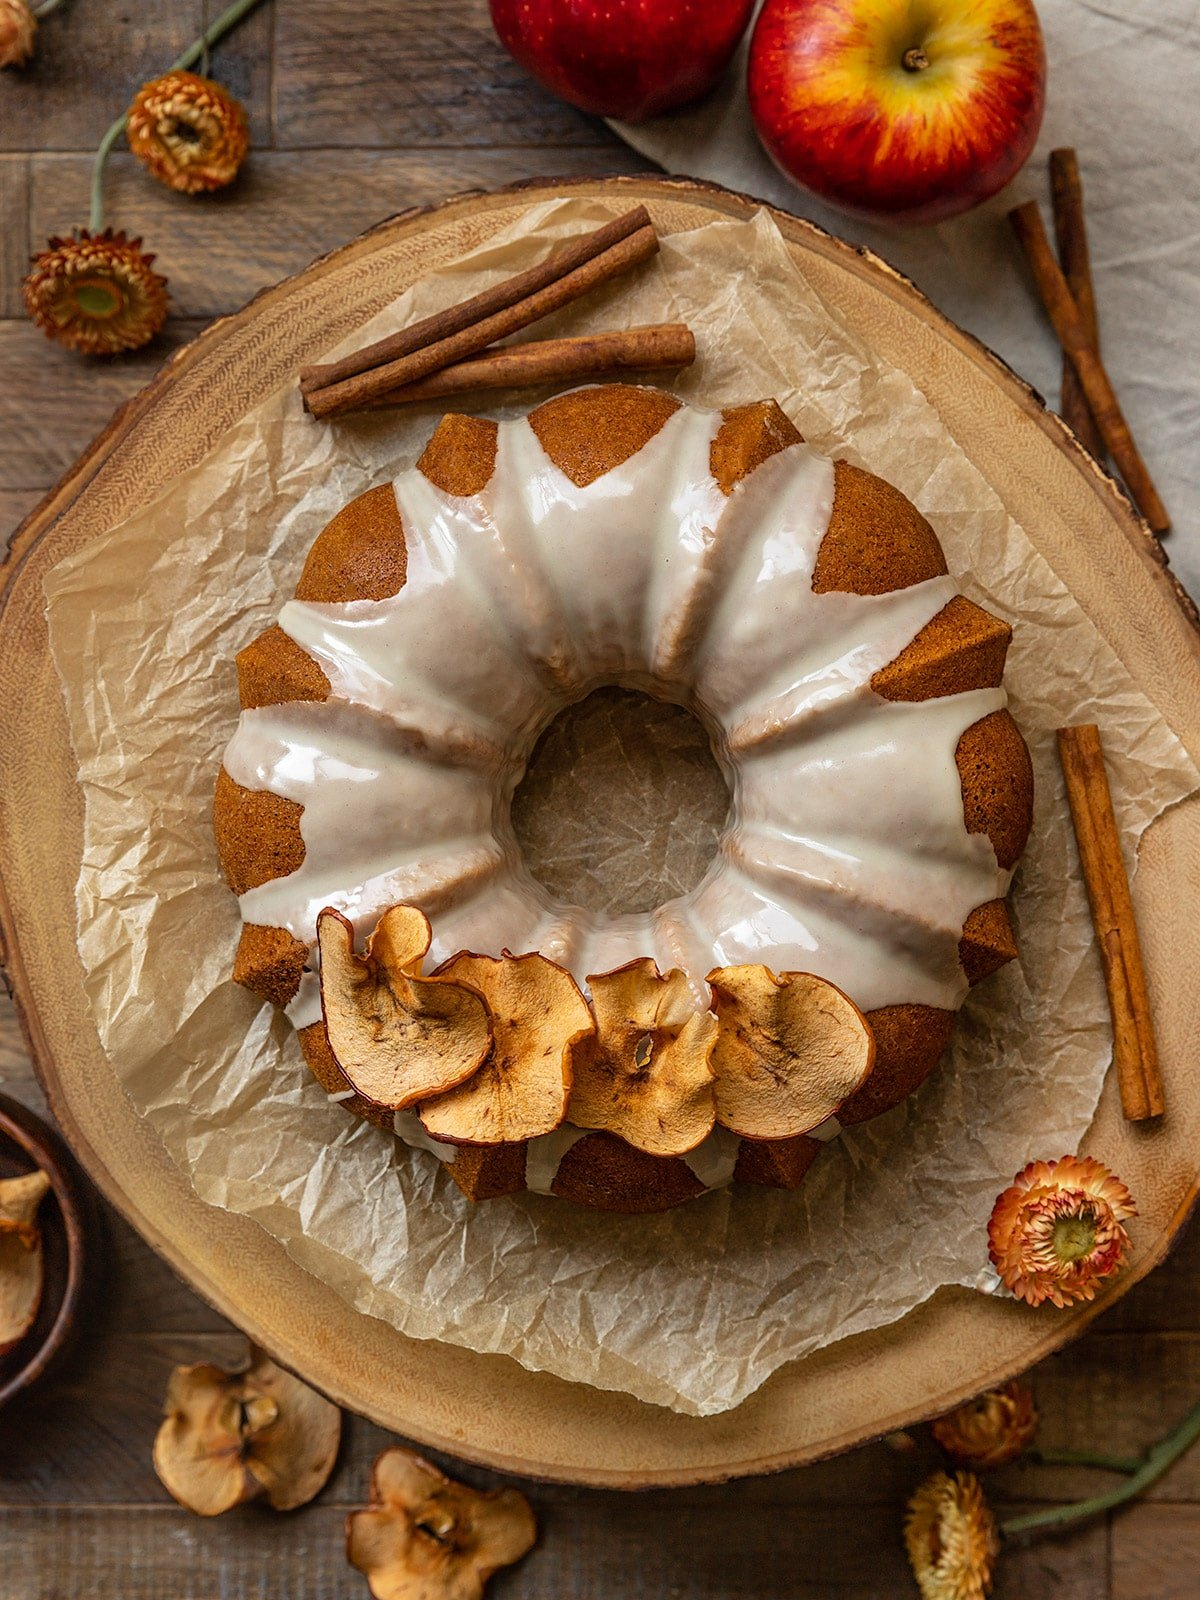 above shot of a bundt cake with glaze and dried apple slices on top on a wooden board